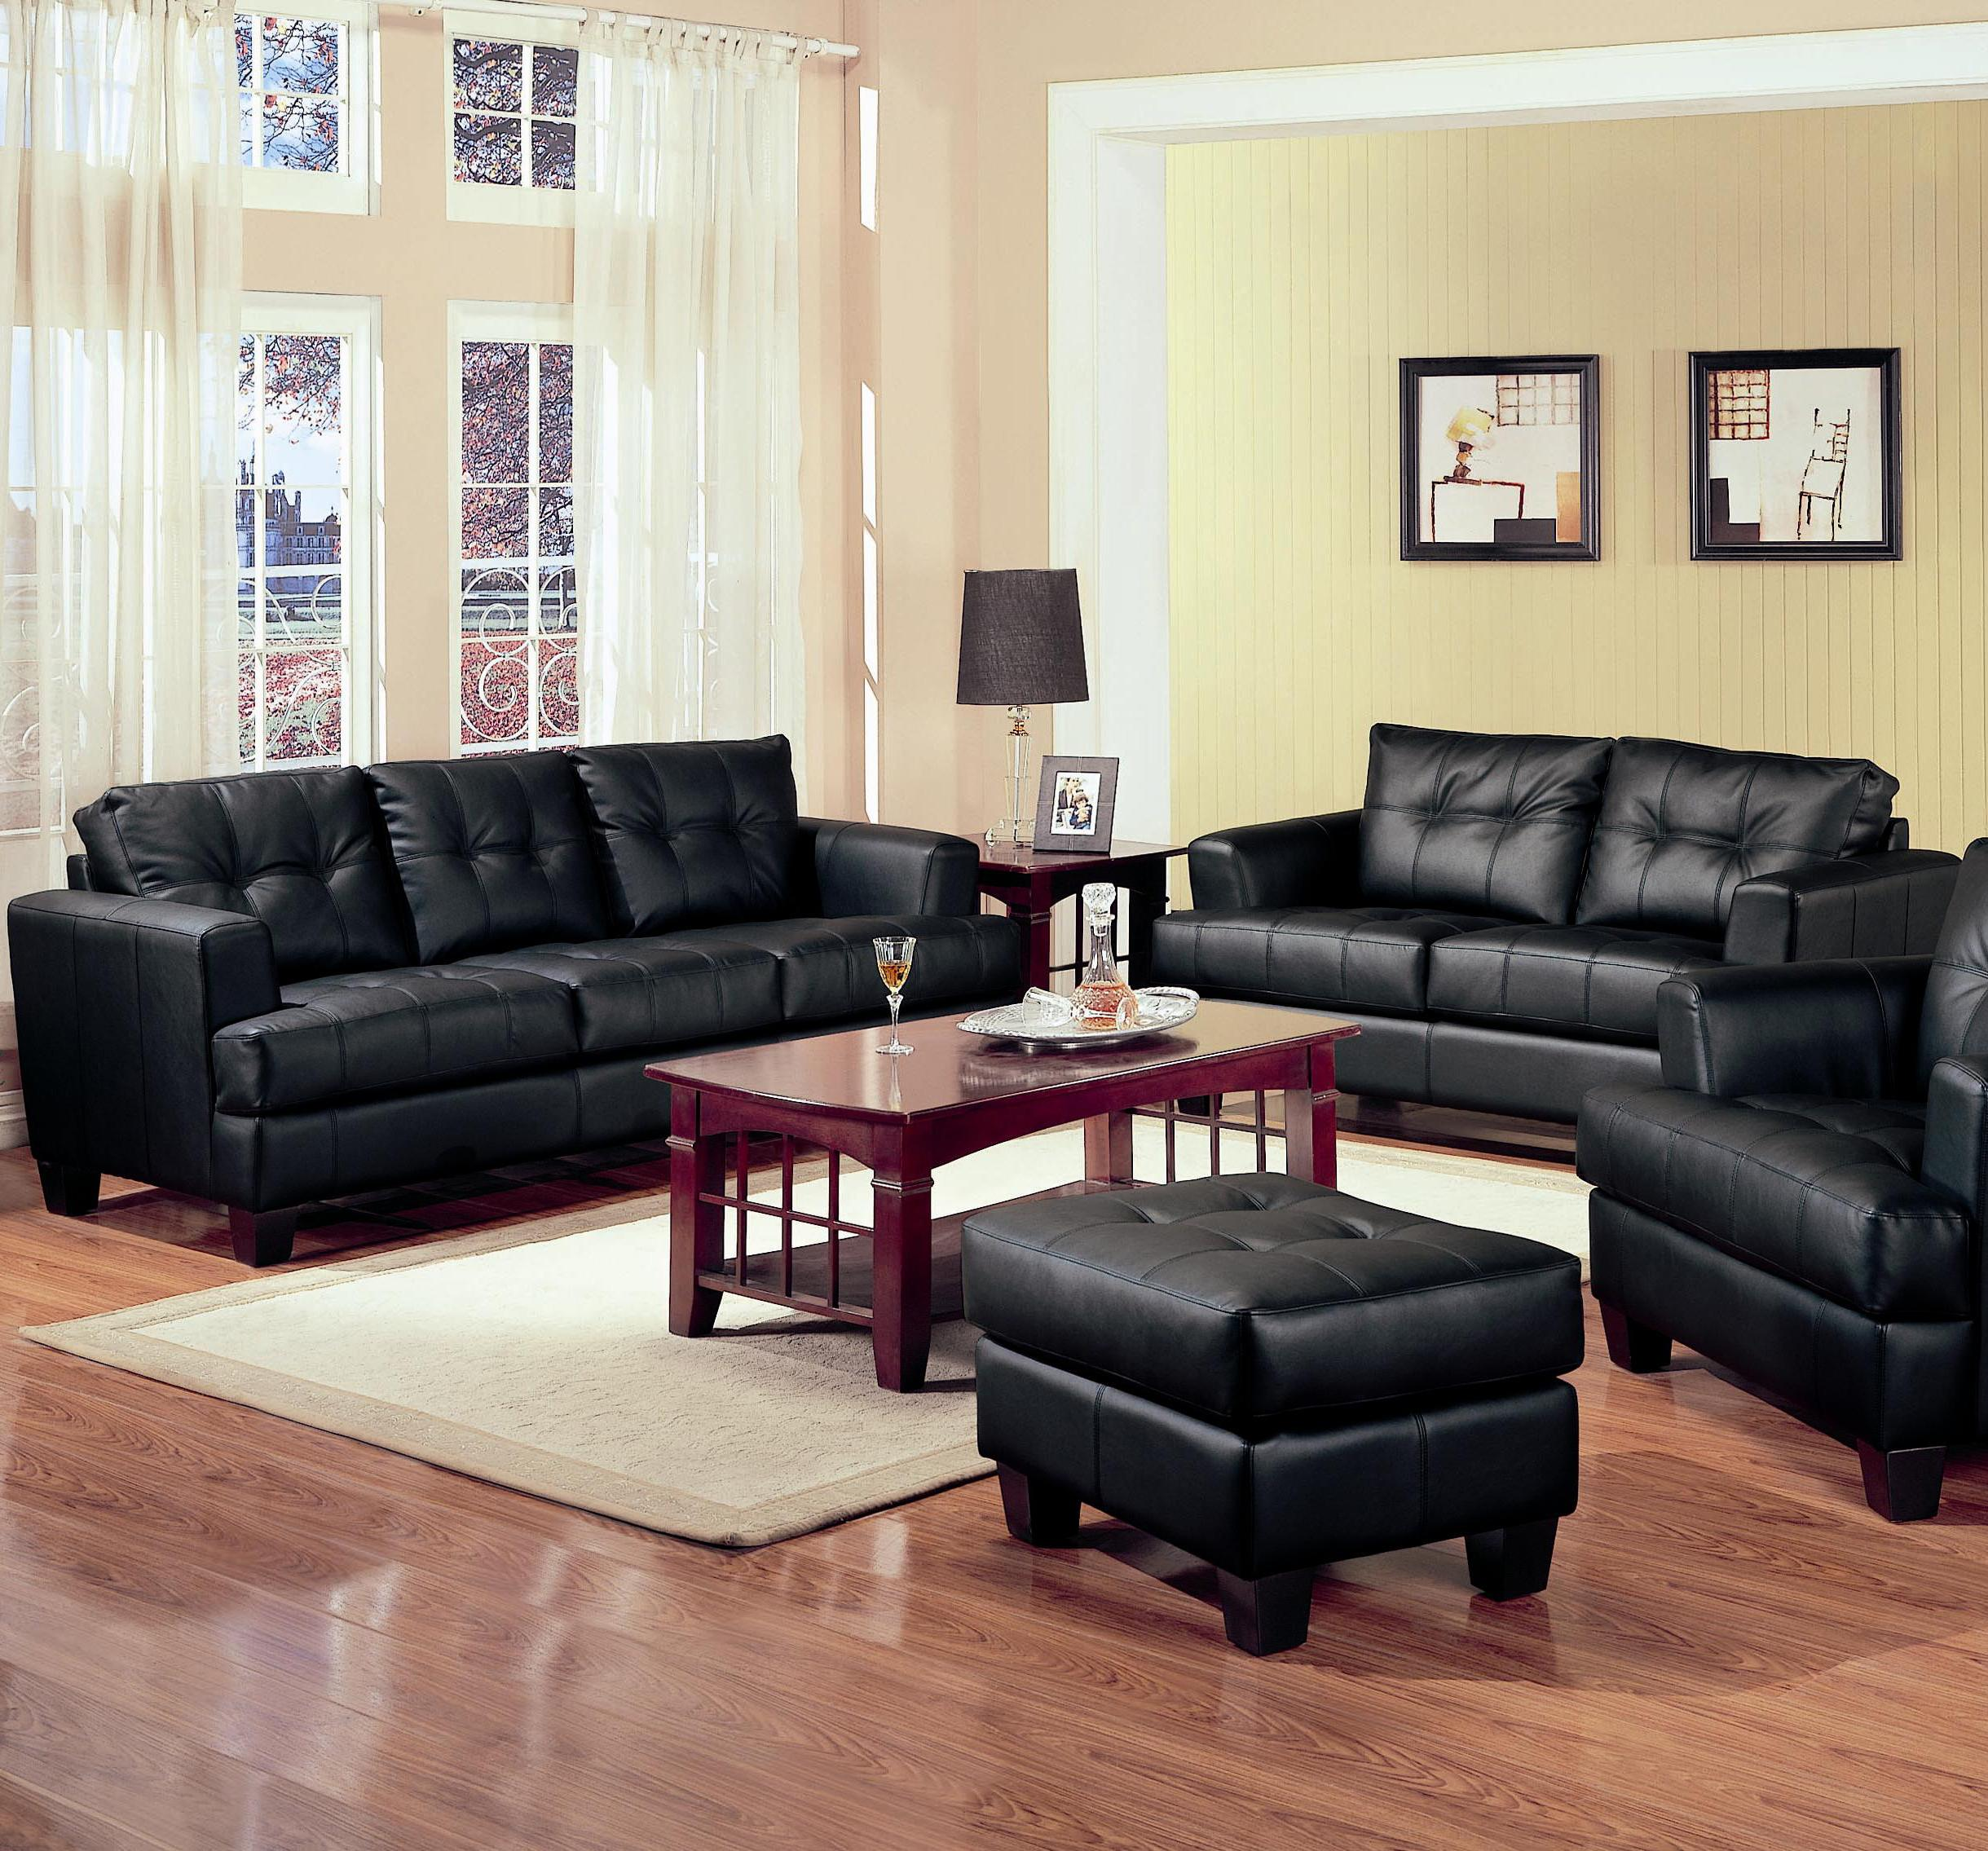 living room color schemes black leather couch 2 sectional ideas coaster samuel piece bonded loveseat and sofa group